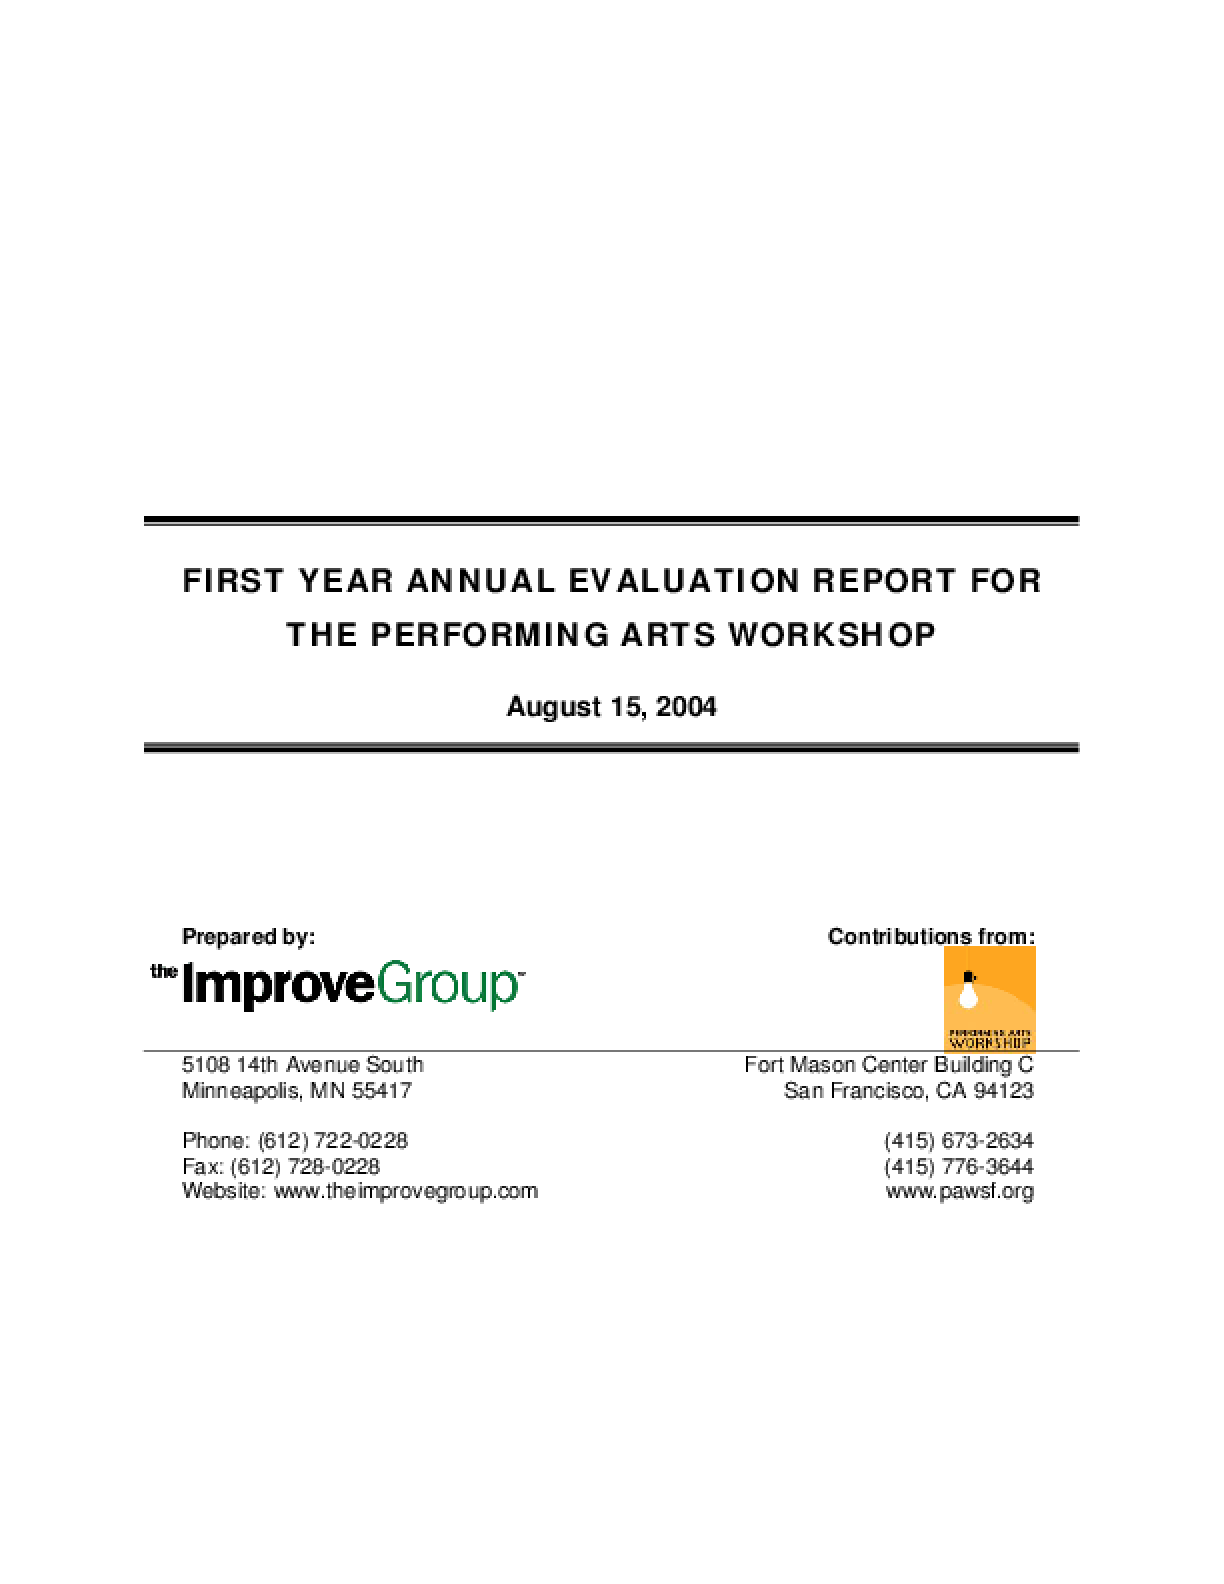 Artists-In-Schools (AIS) First-Year Annual Evaluation Report for the U.S. Dept. of Education (2003-04)